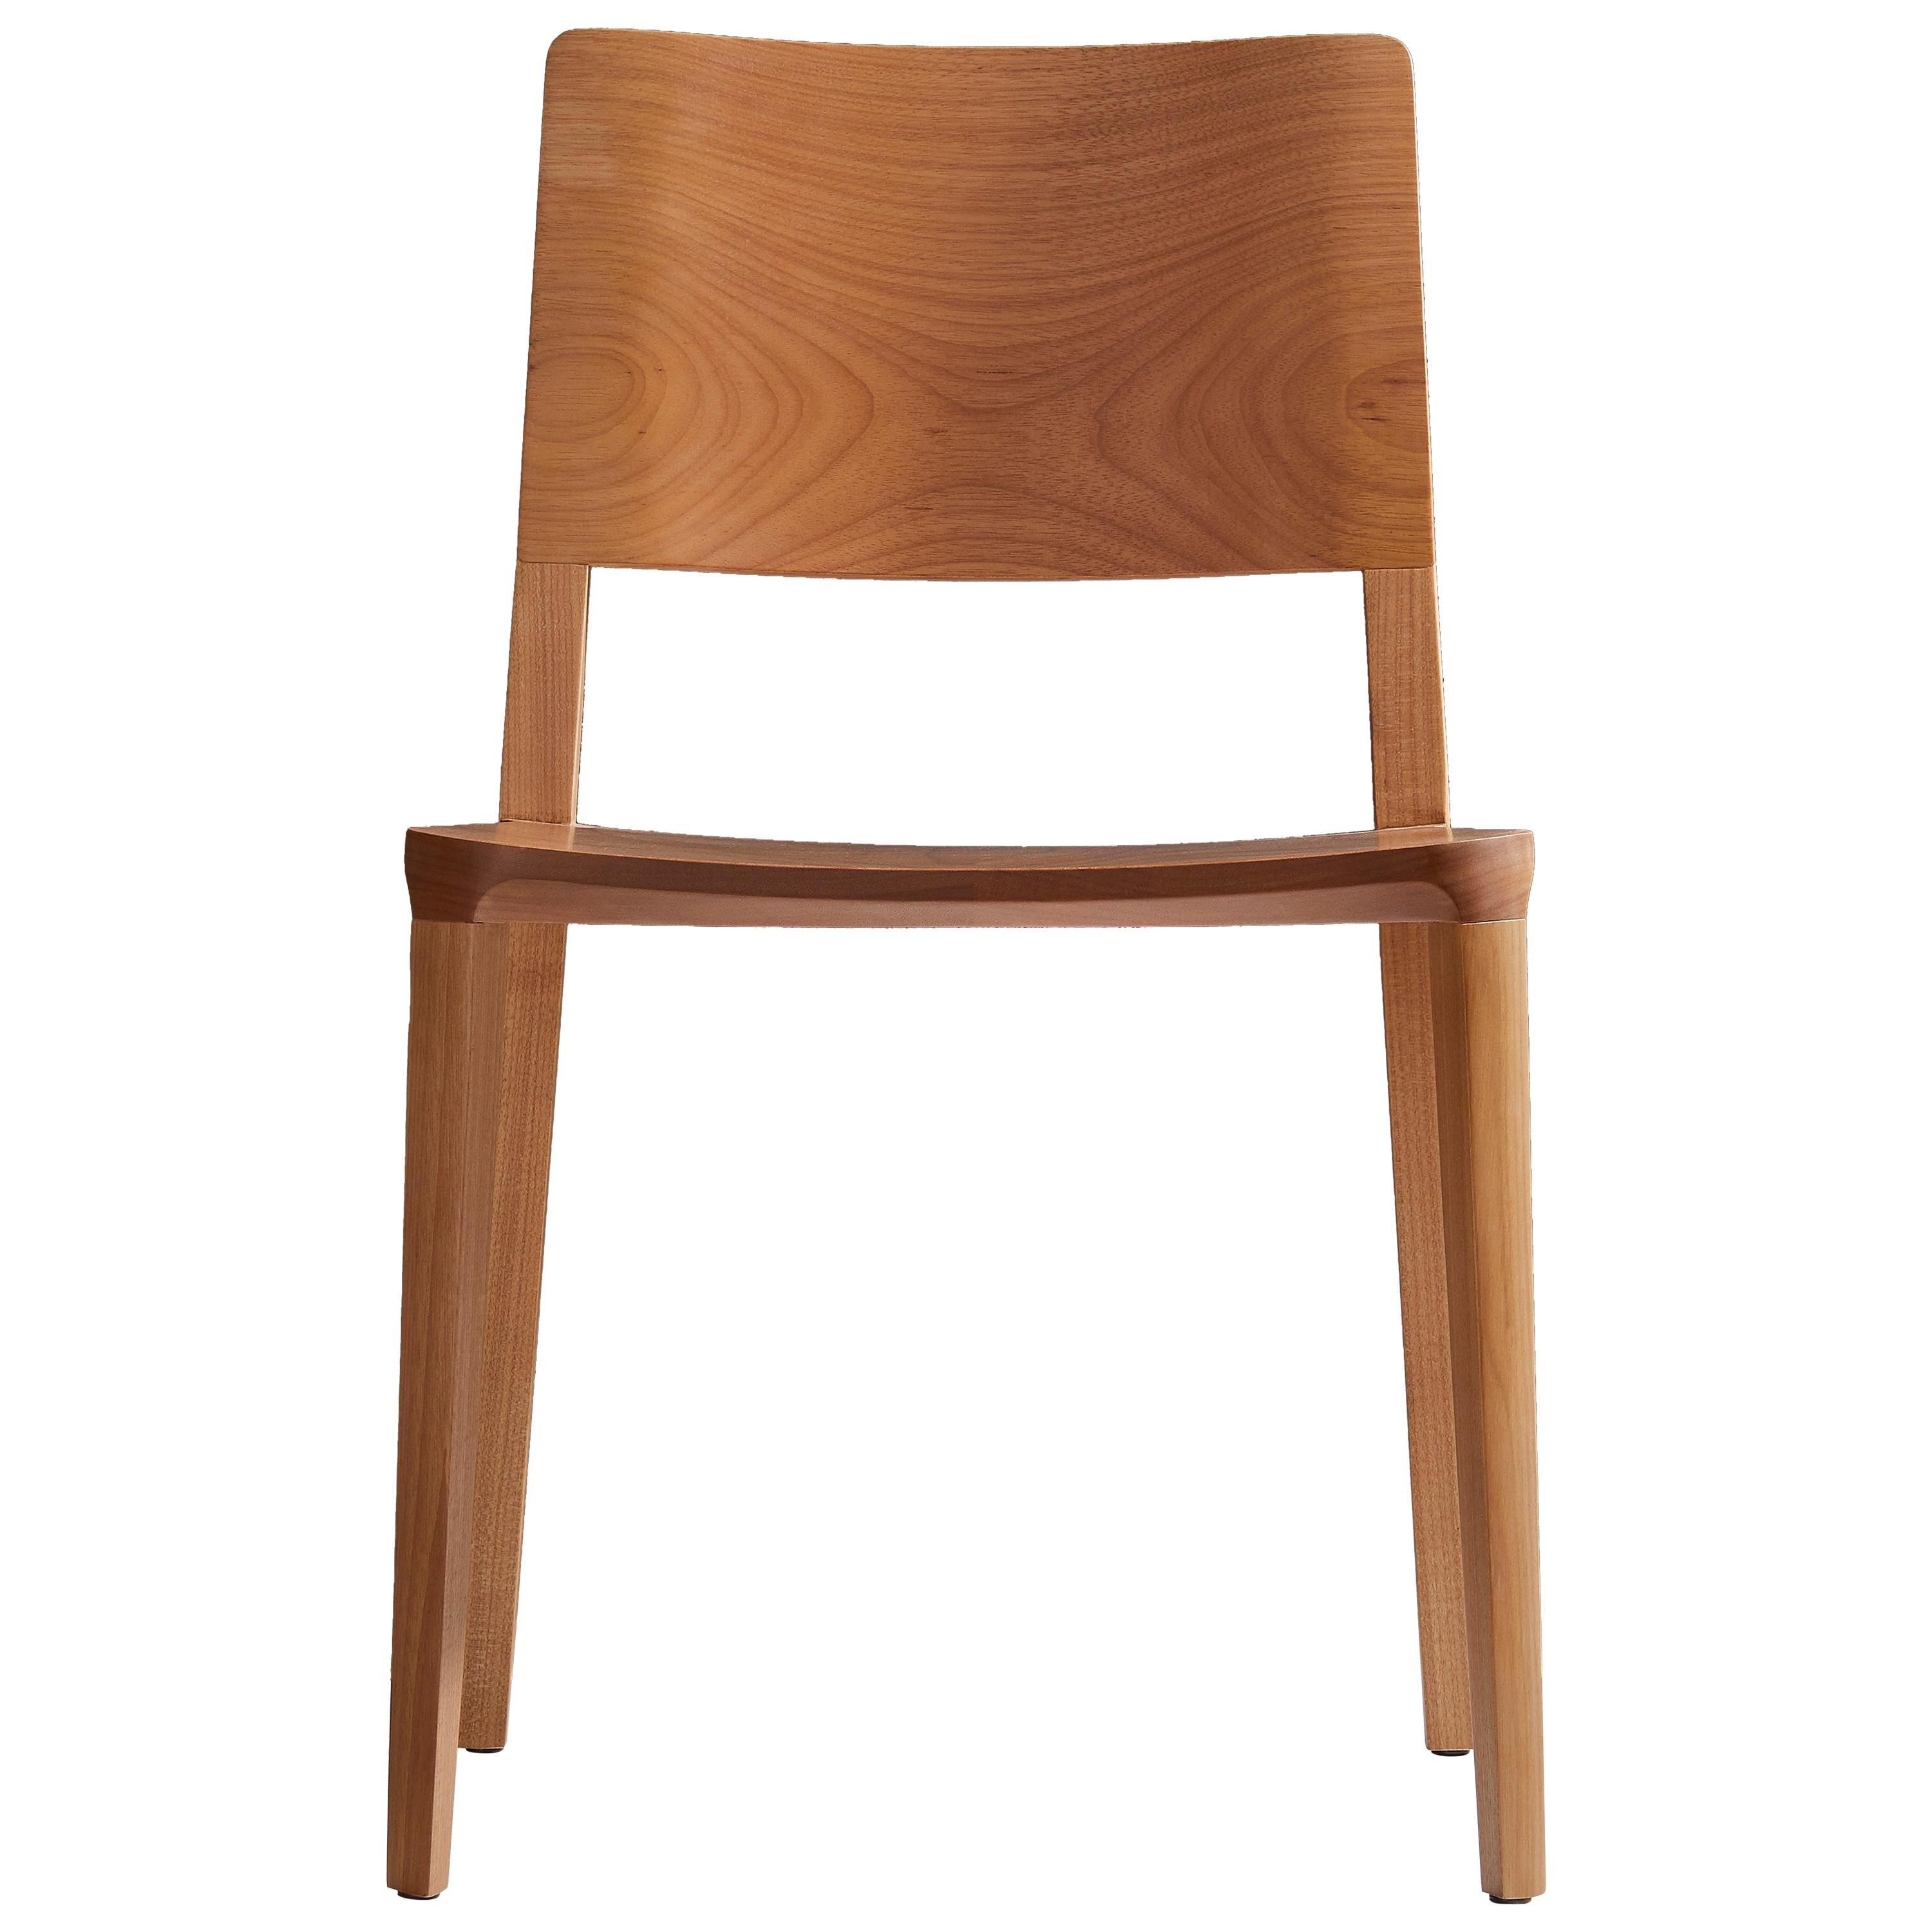 Minimalist Modern Chair in Natural Solid Wood